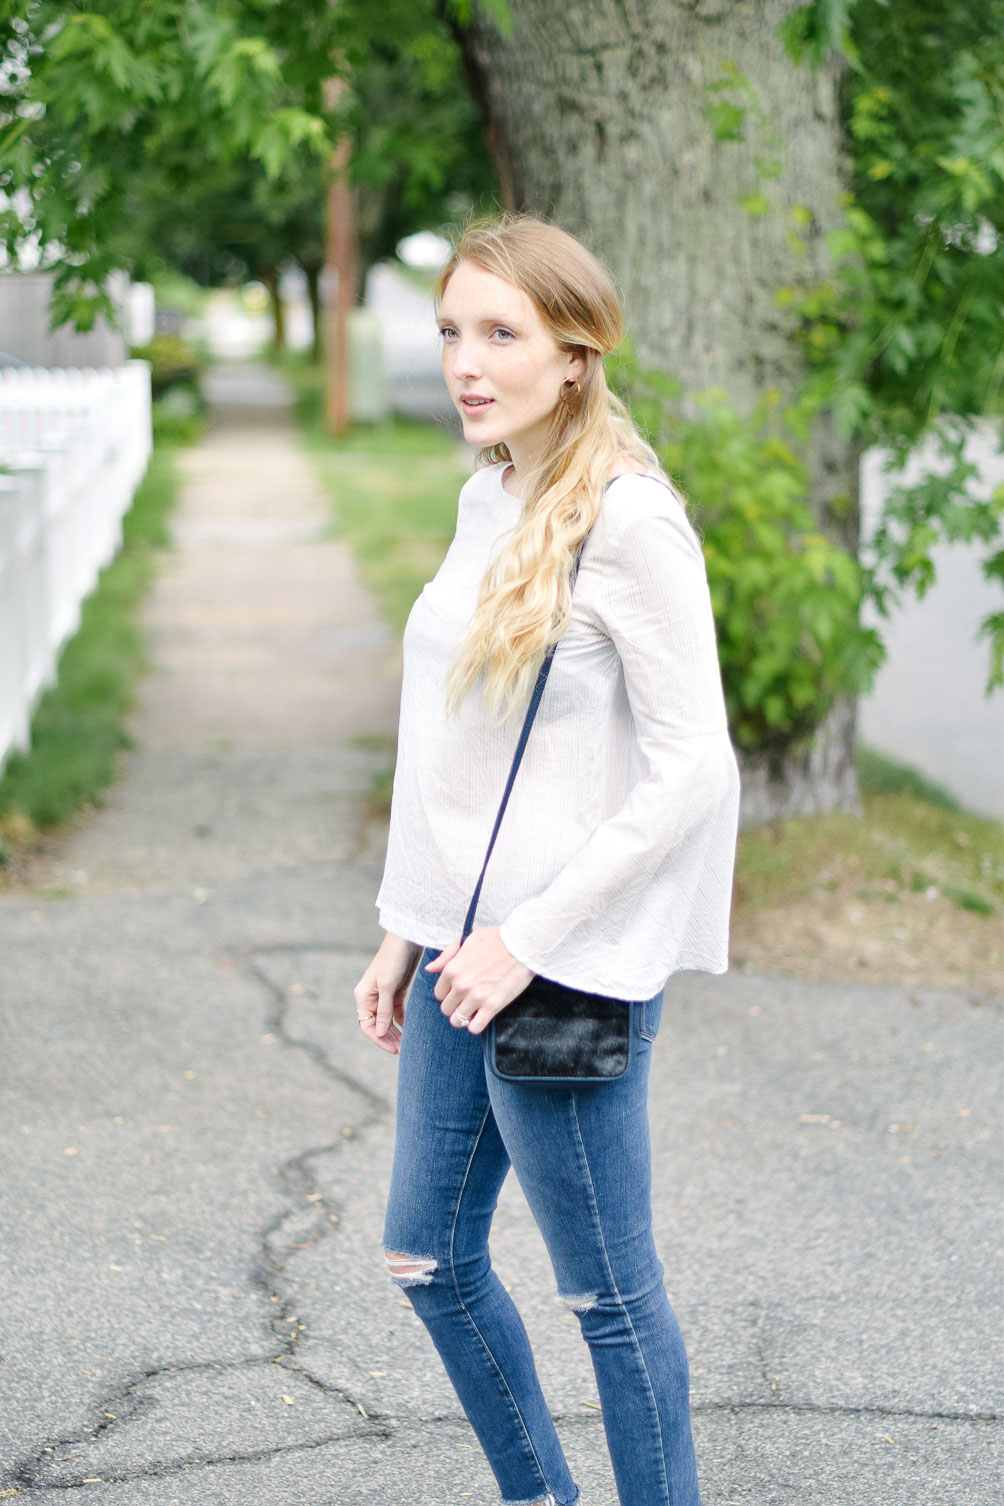 fashion blogger Leslie Musser styling transitional basics to wear from summer into fall with this casual outfit